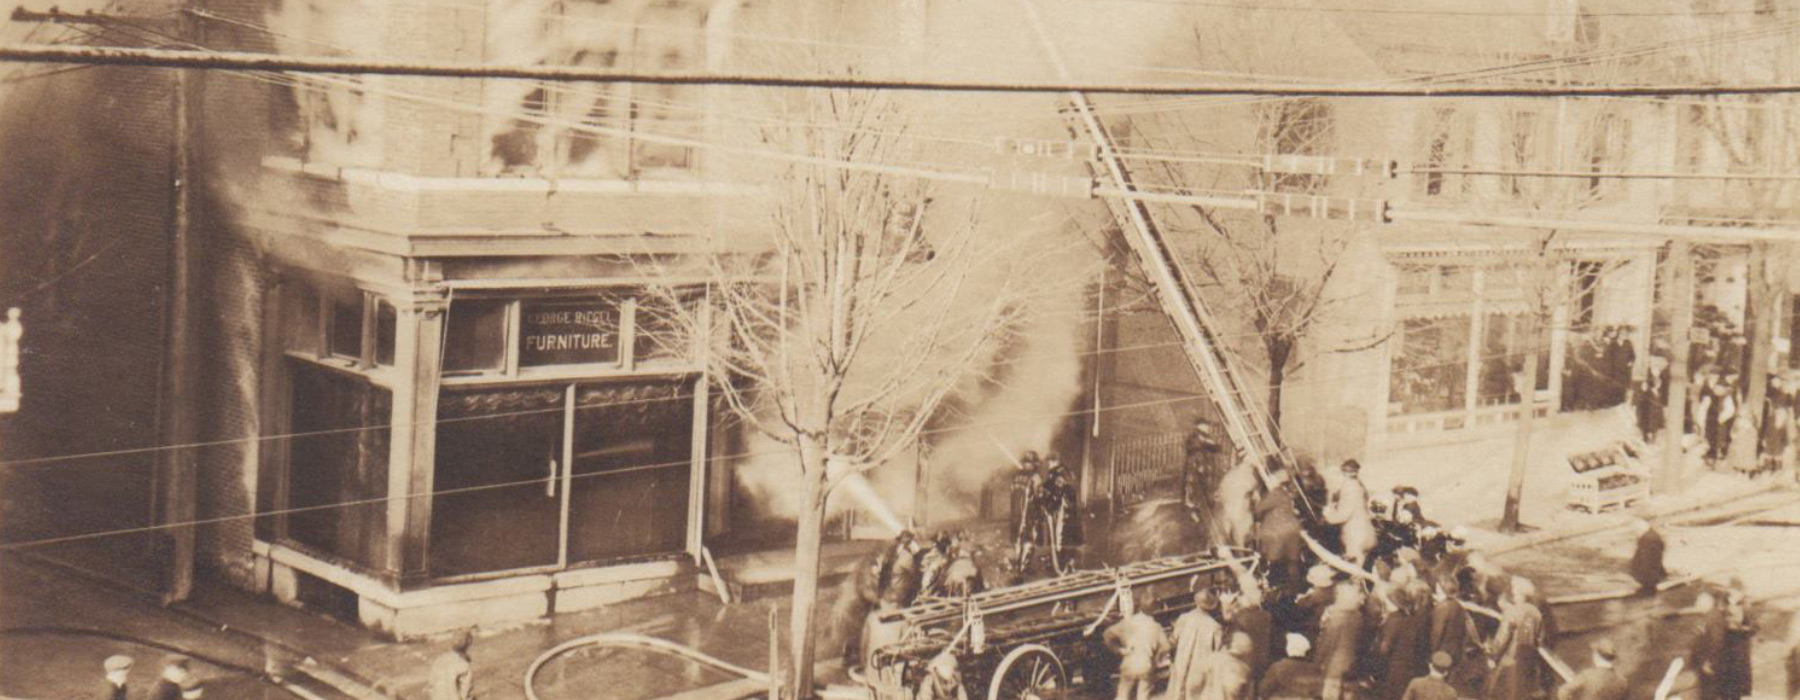 Fire Destroys The Riegel Furniture Store On West Broad Street In Bethlehem,  March 1919